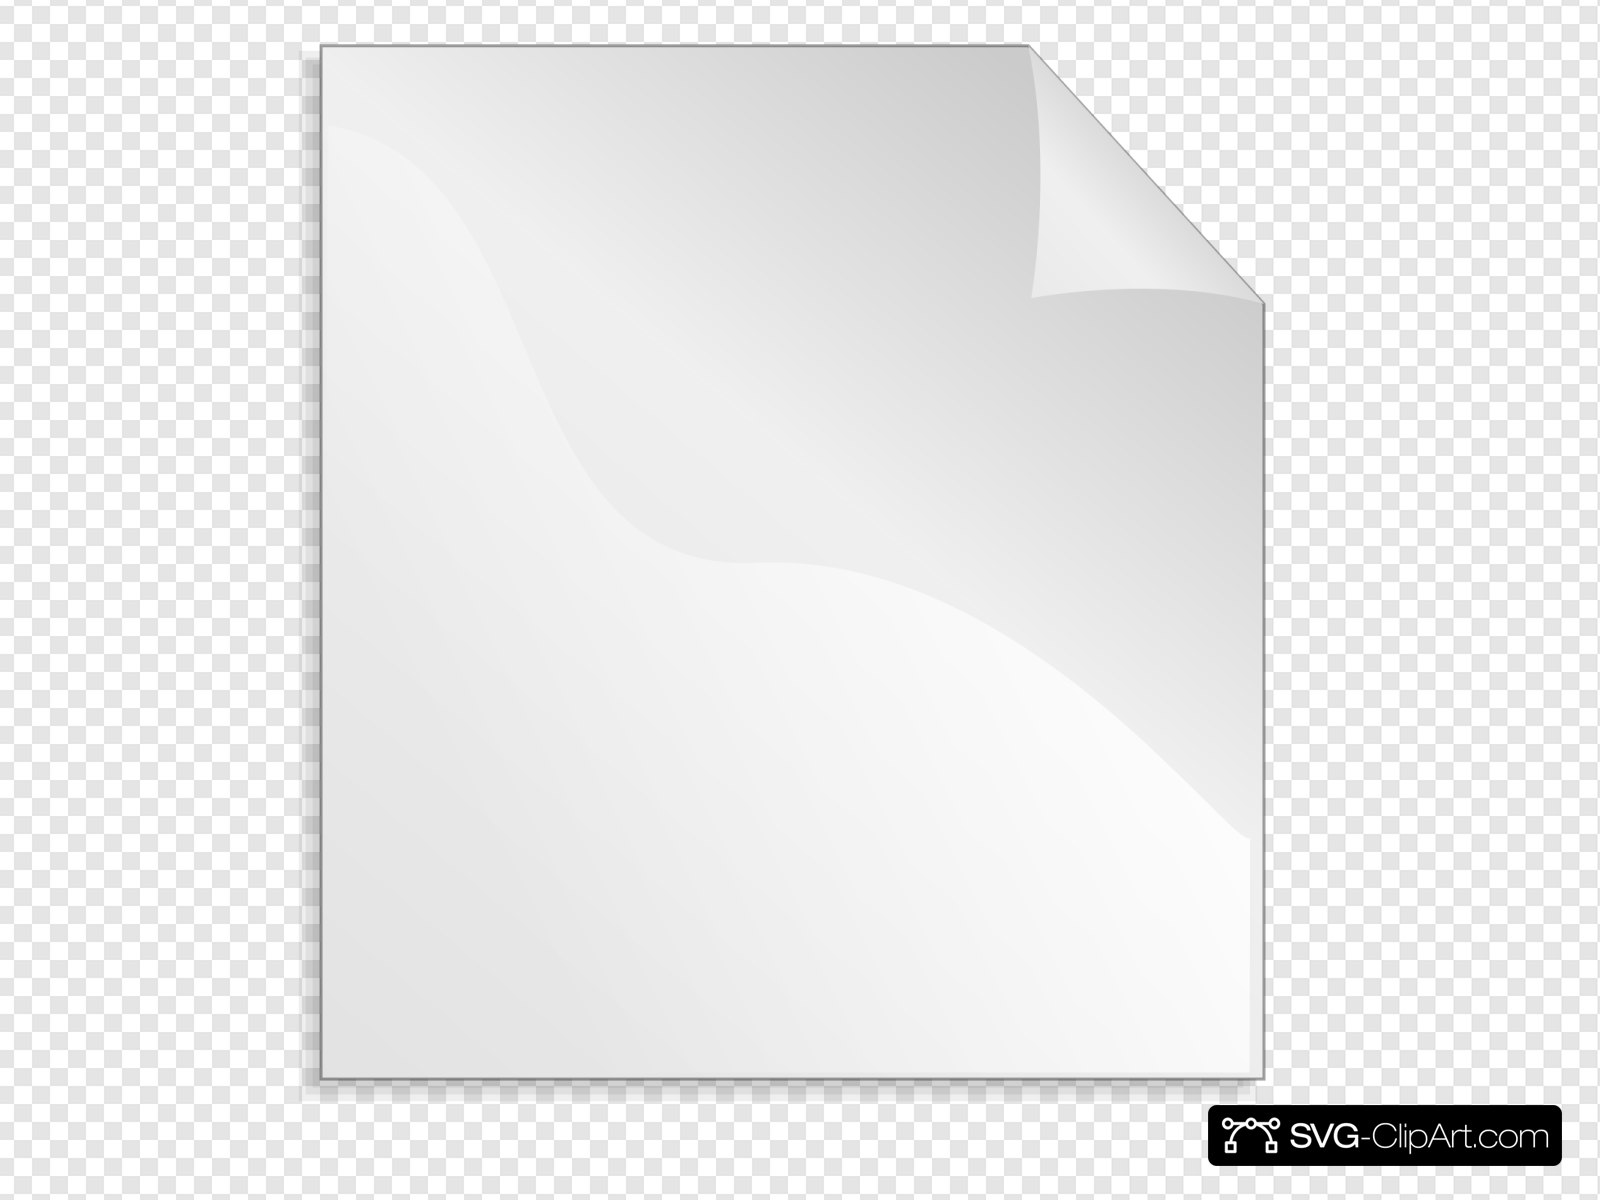 New Page Icon Clip art, Icon and SVG.